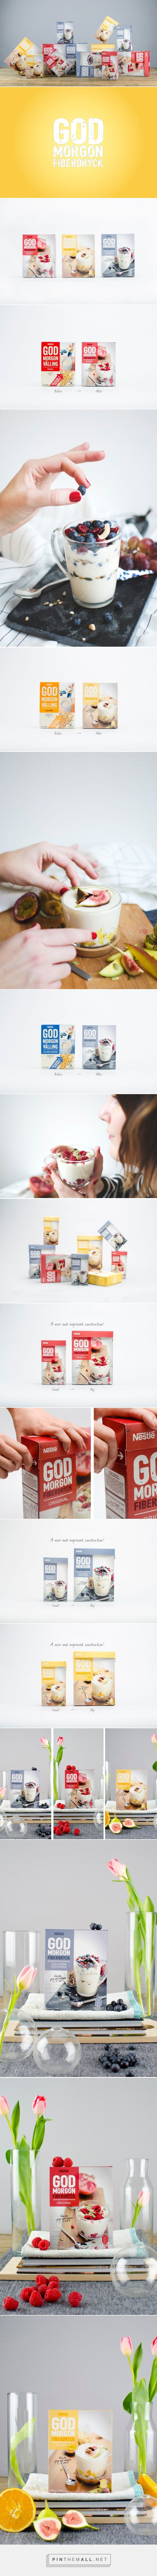 God Morgon Fiber Drink - Packaging of the World - Creative Package Design Gallery - http://www.packagingoftheworld.com/2016/07/god-morgon-fiber-drink.html